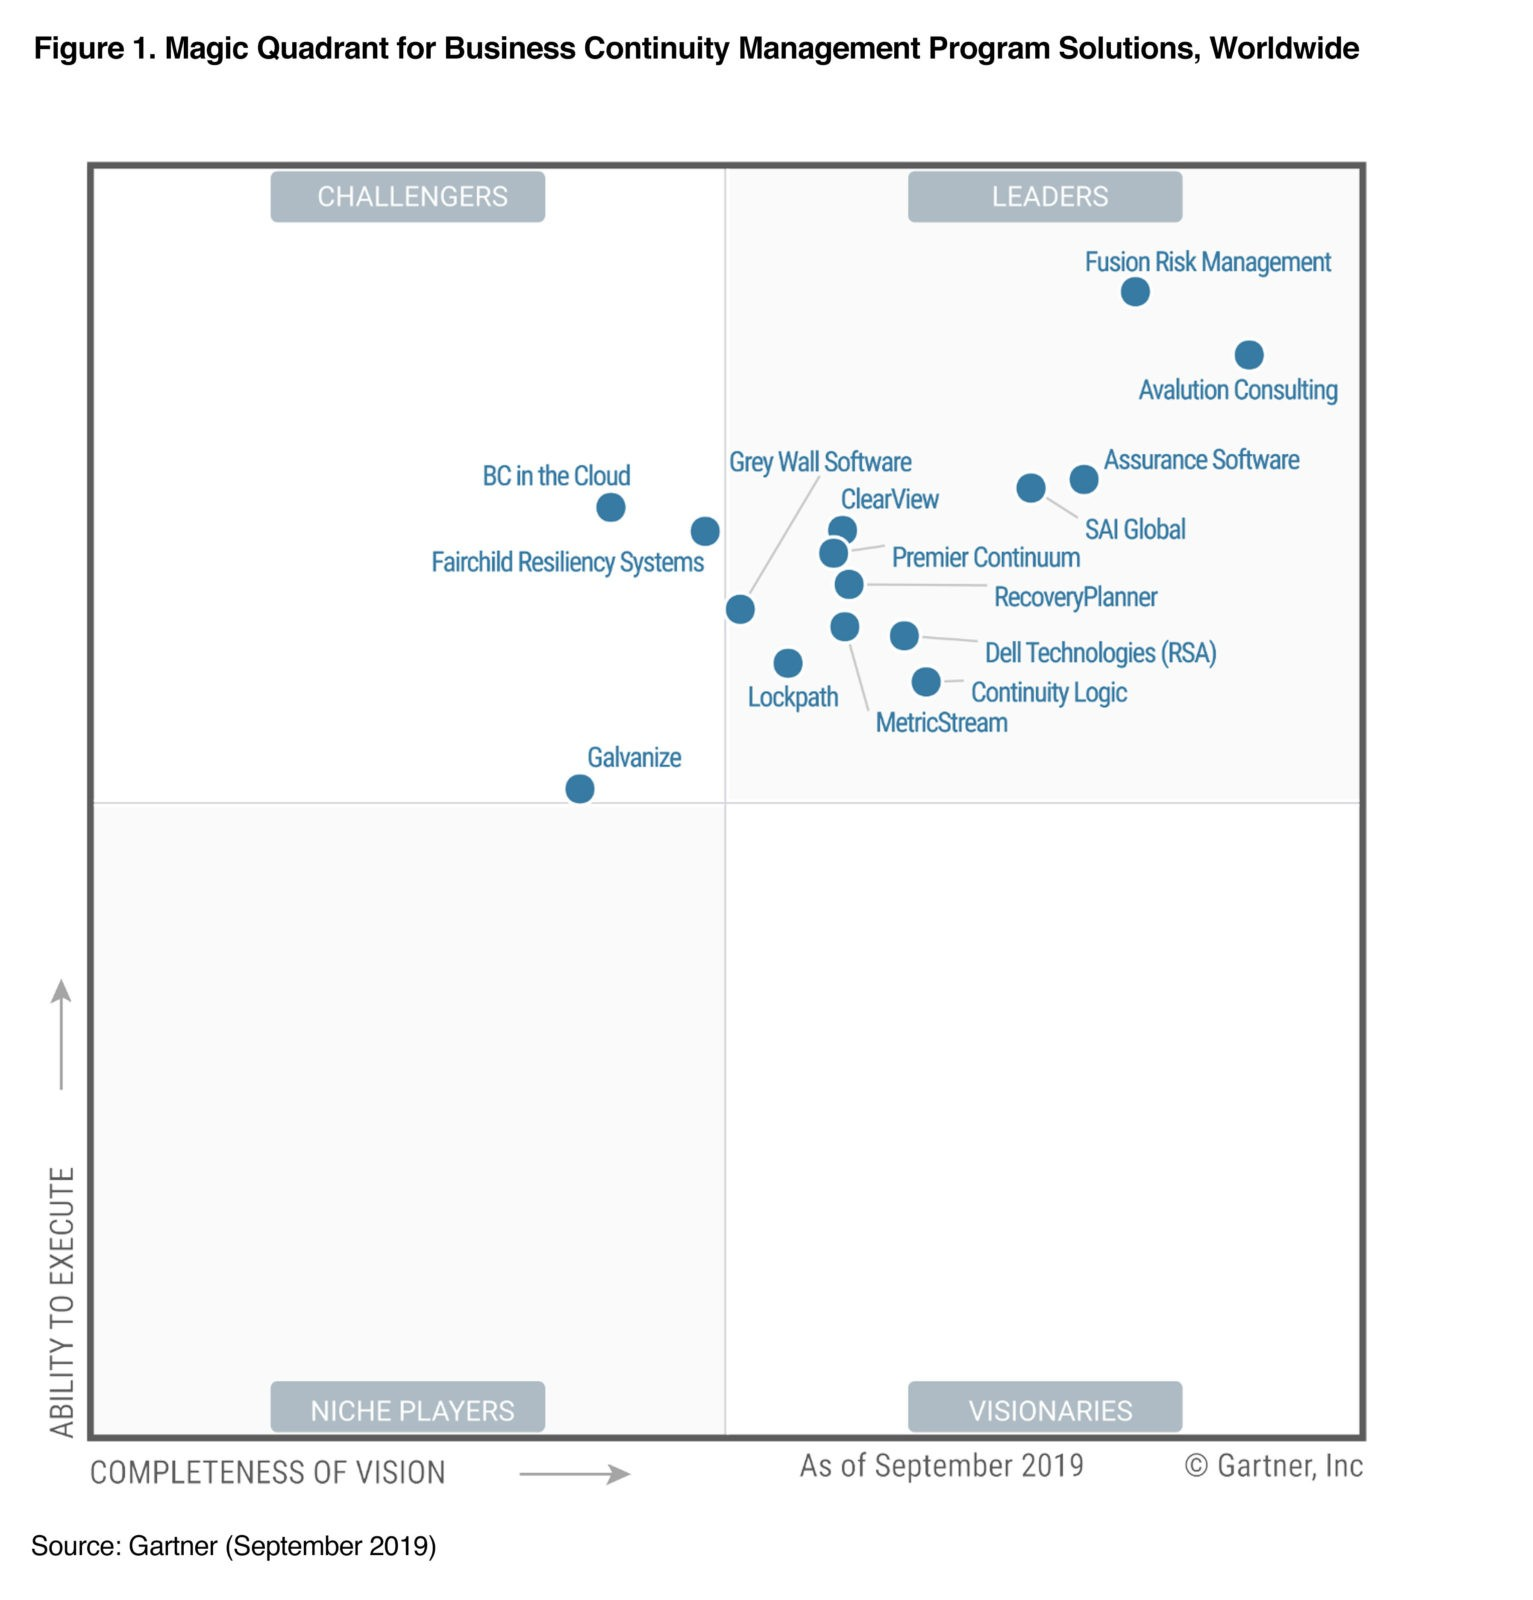 Gartner Magic Quadrant for Business Continuity Management Program Solutions